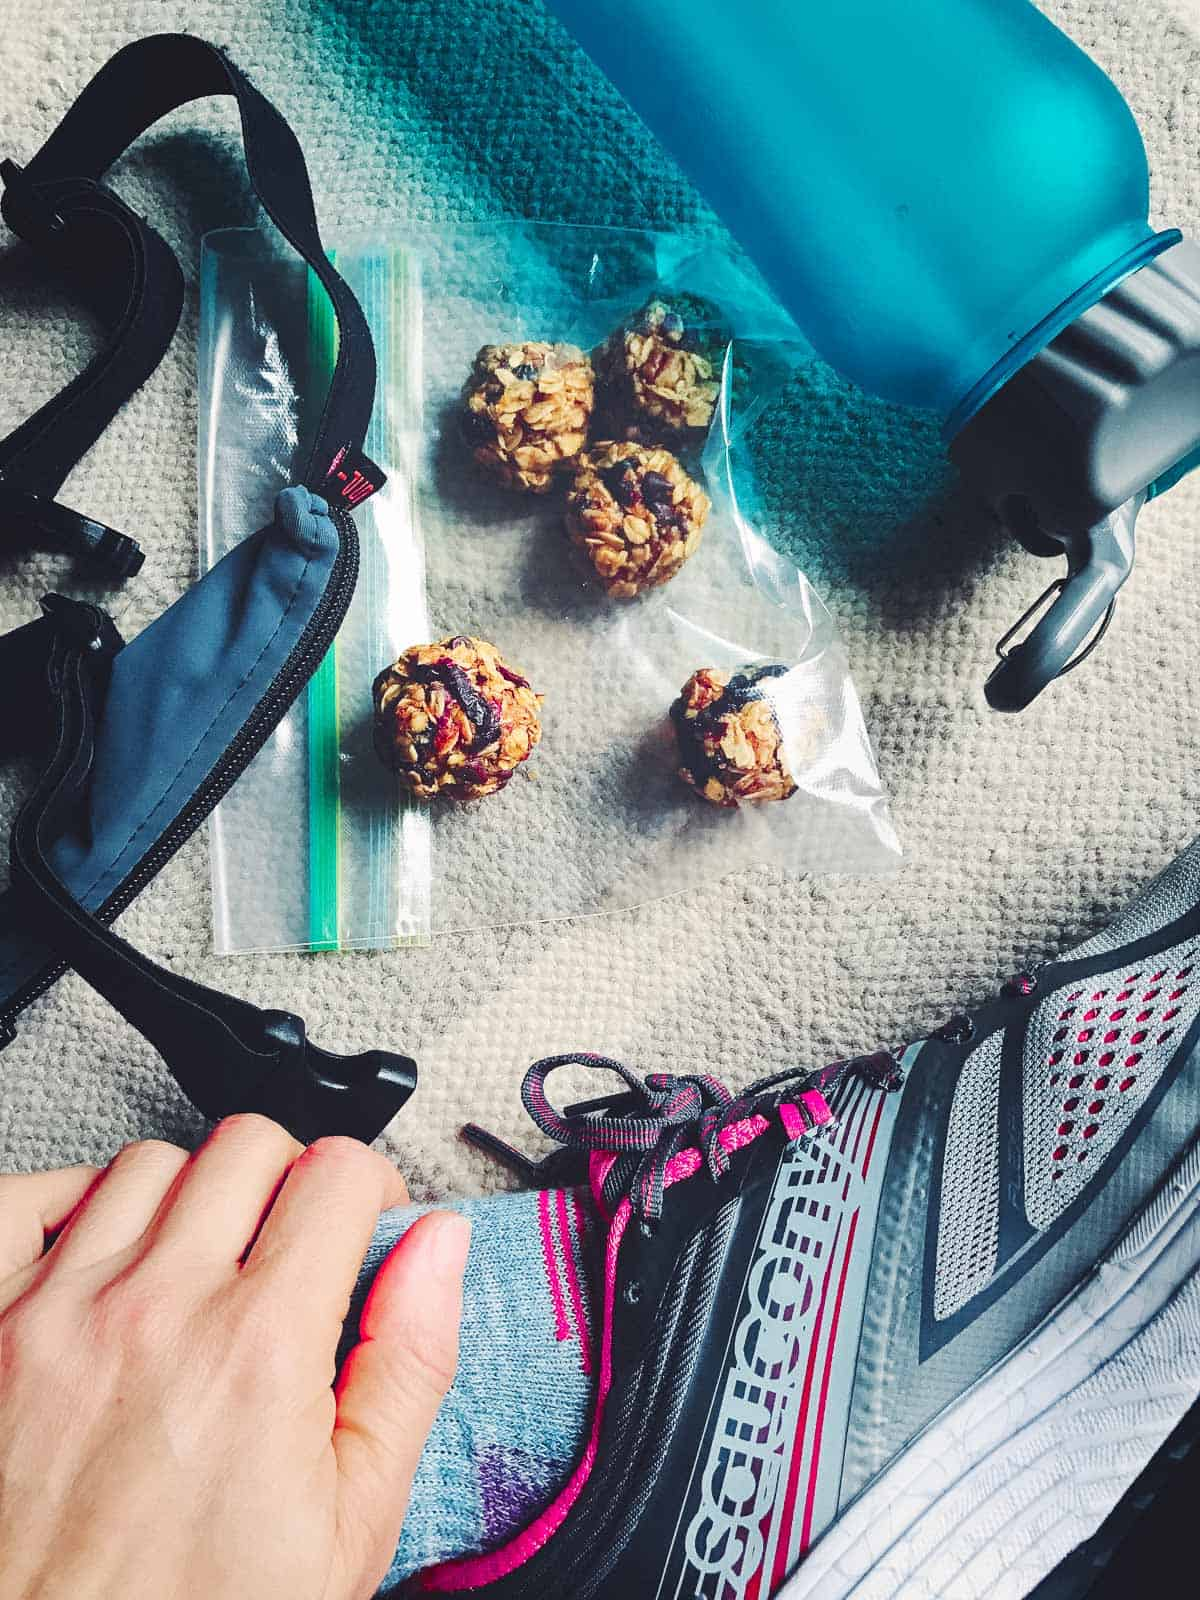 No bake oatmeal cookie bites filled with cranberries and orange are great to fuel up with before your long run or workout.